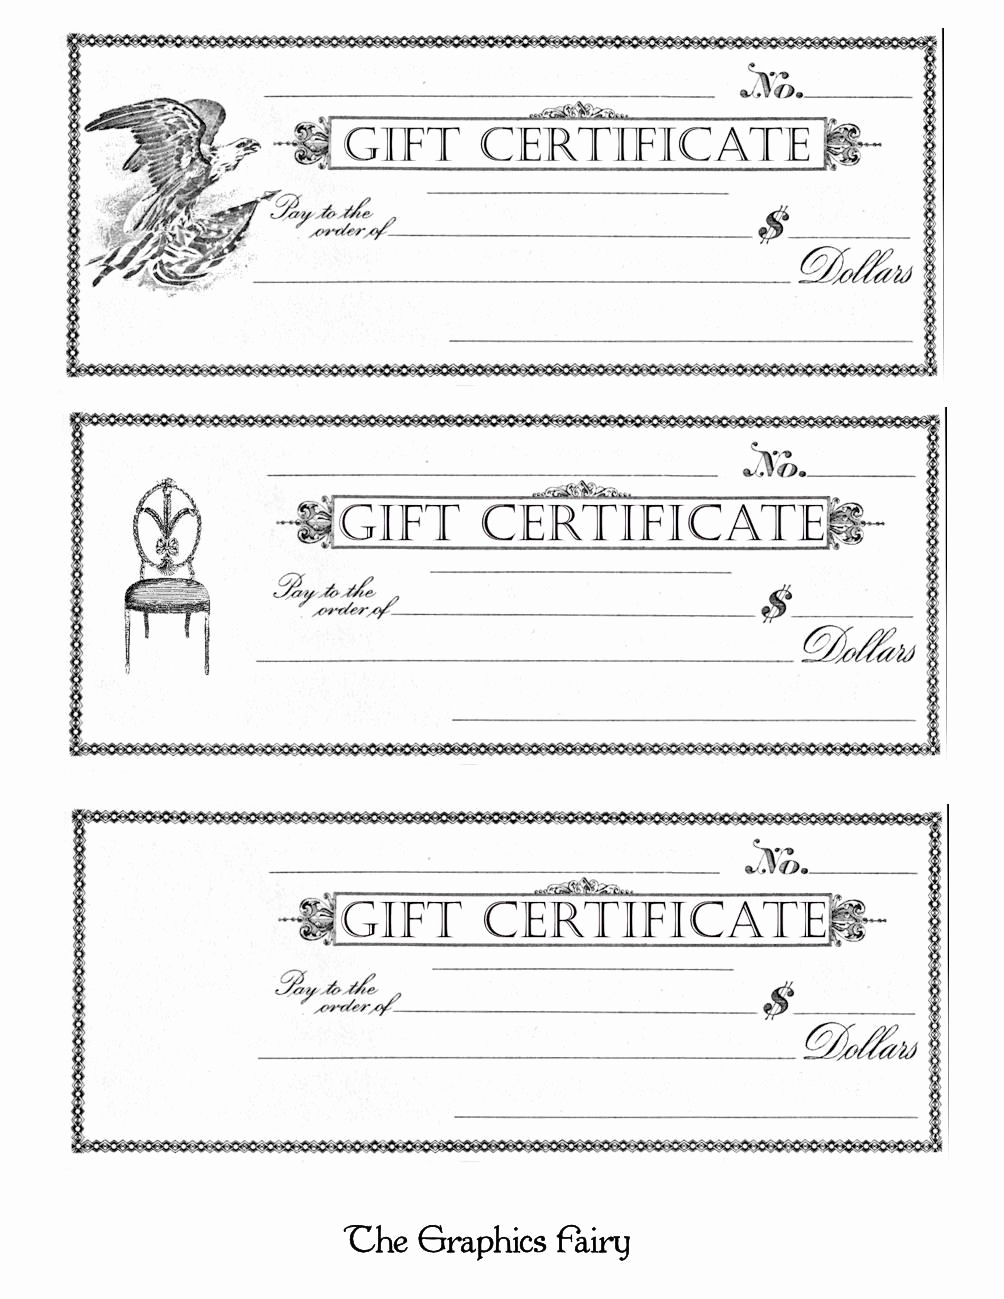 Gift Certificate Template Printable Awesome Free Printable Gift Certificates